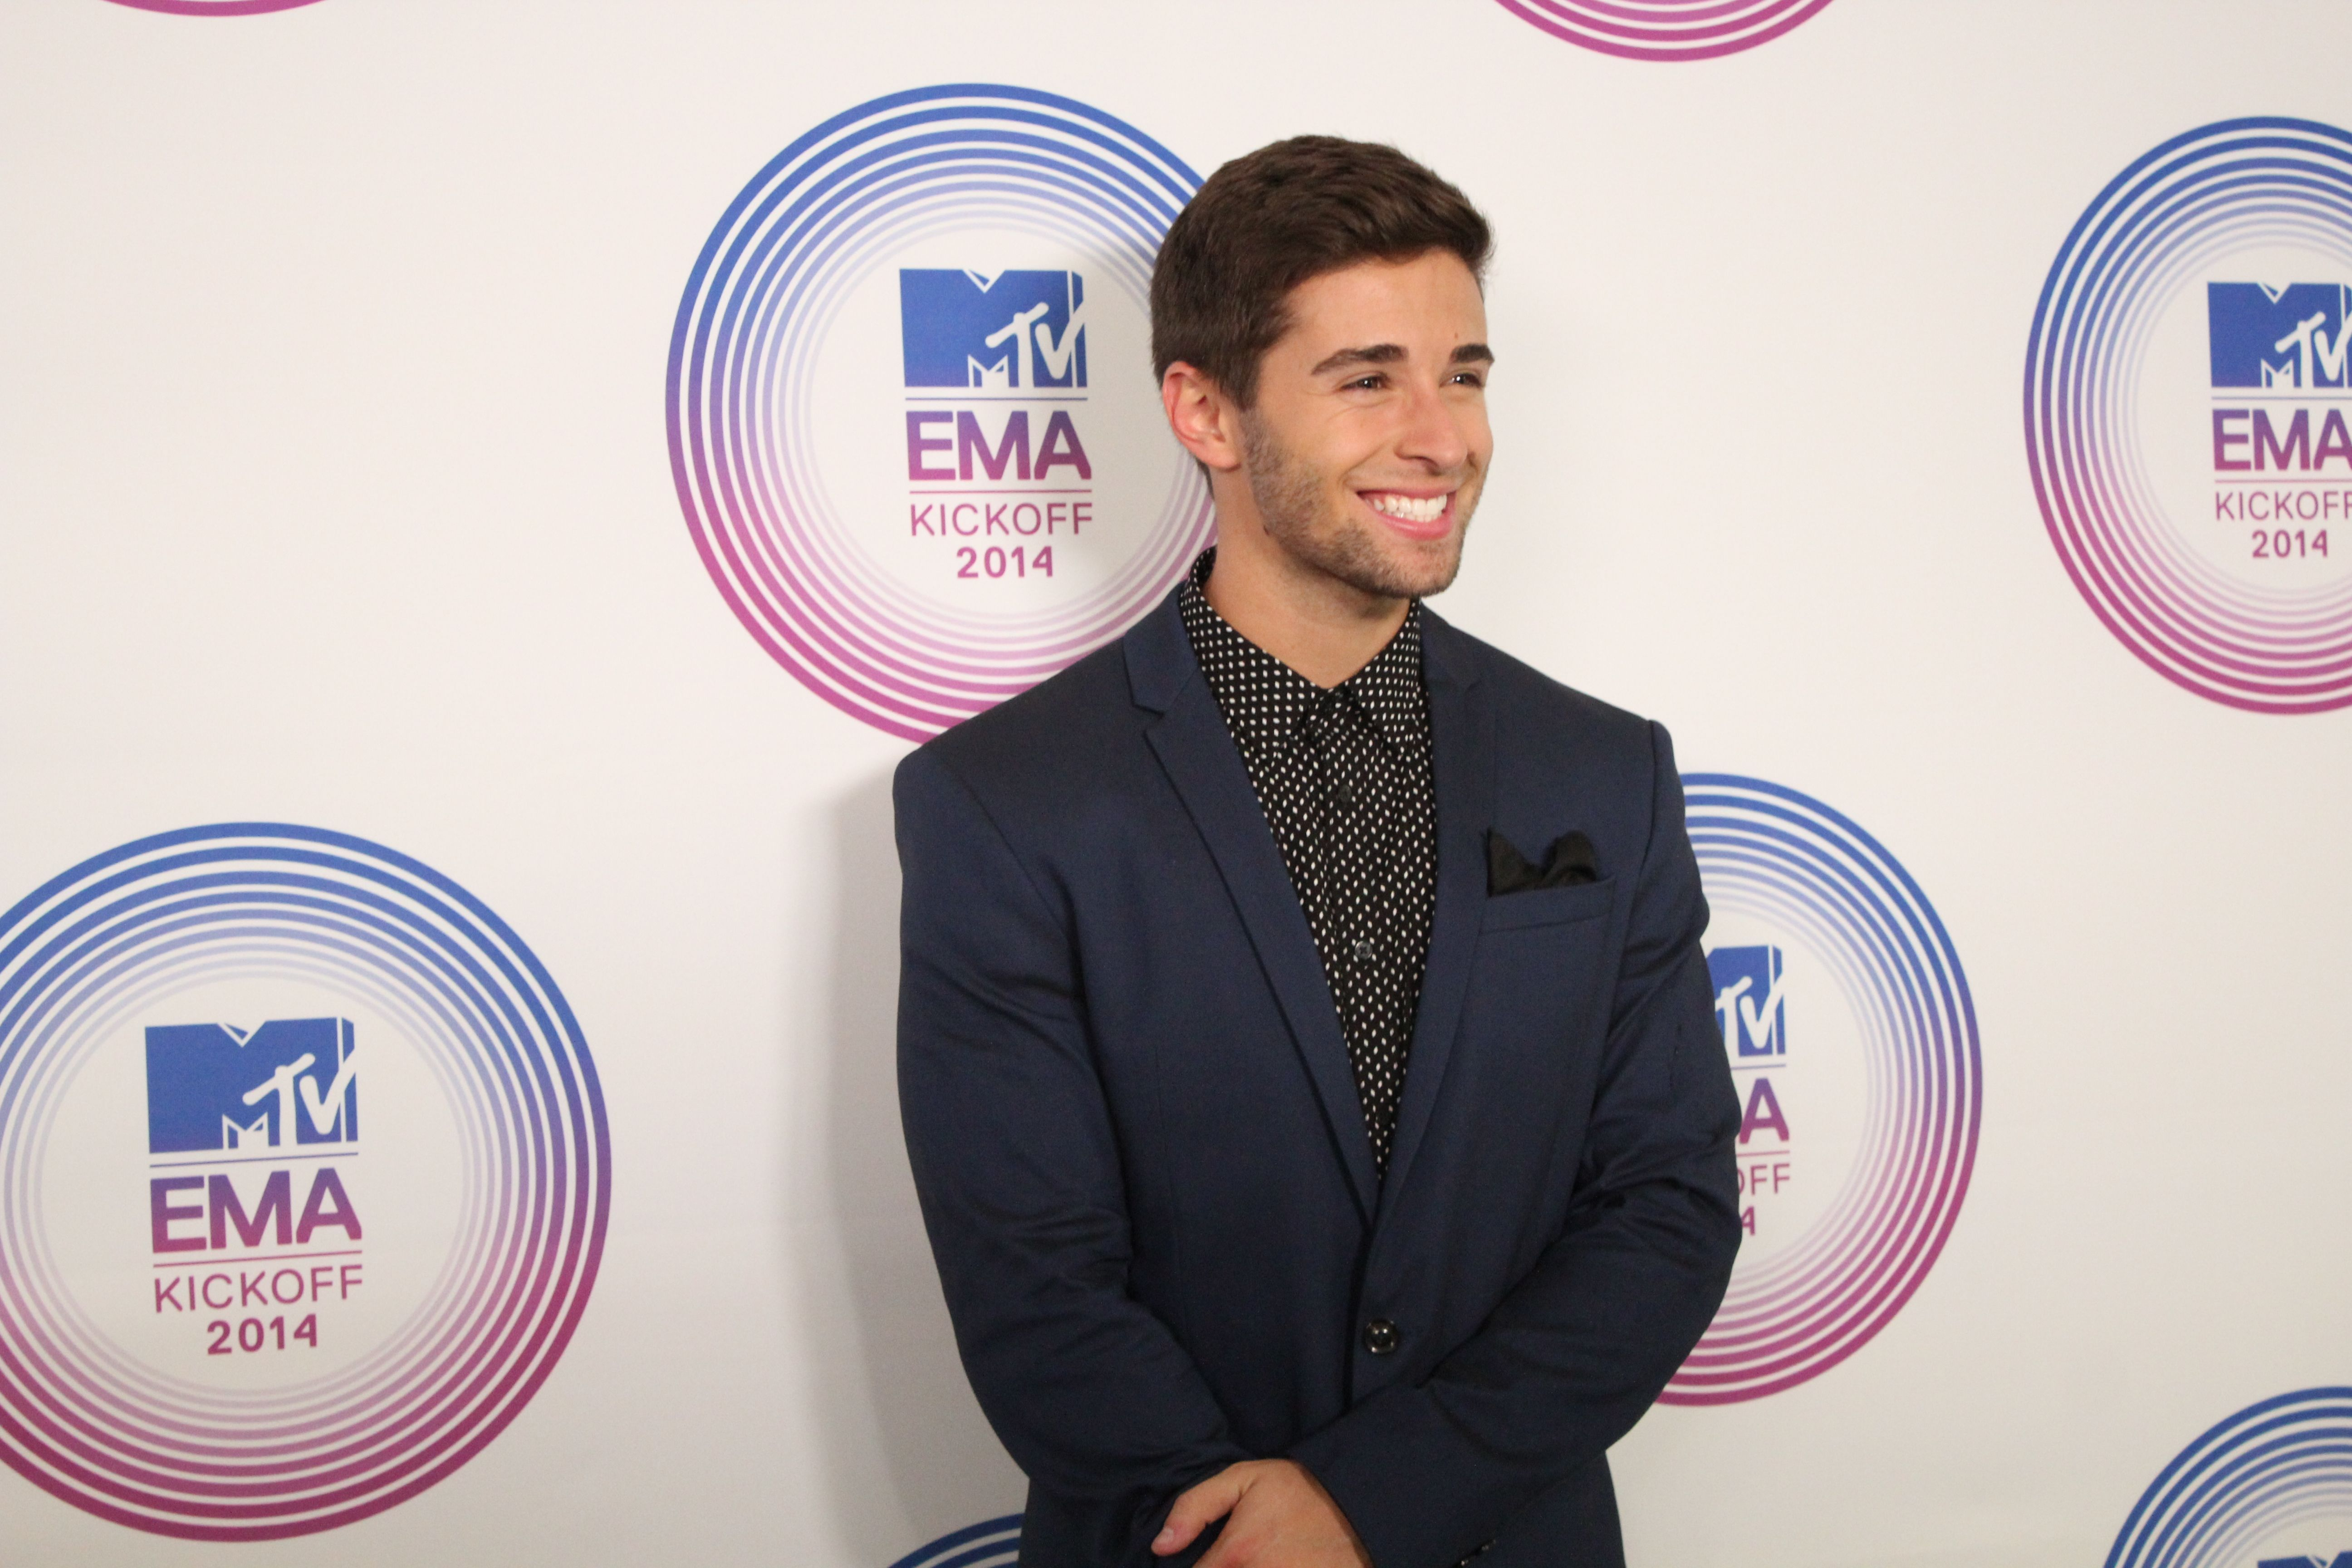 Jake Miller Performs At The MTV EMA Kickoff In Miami FL Staff Photo